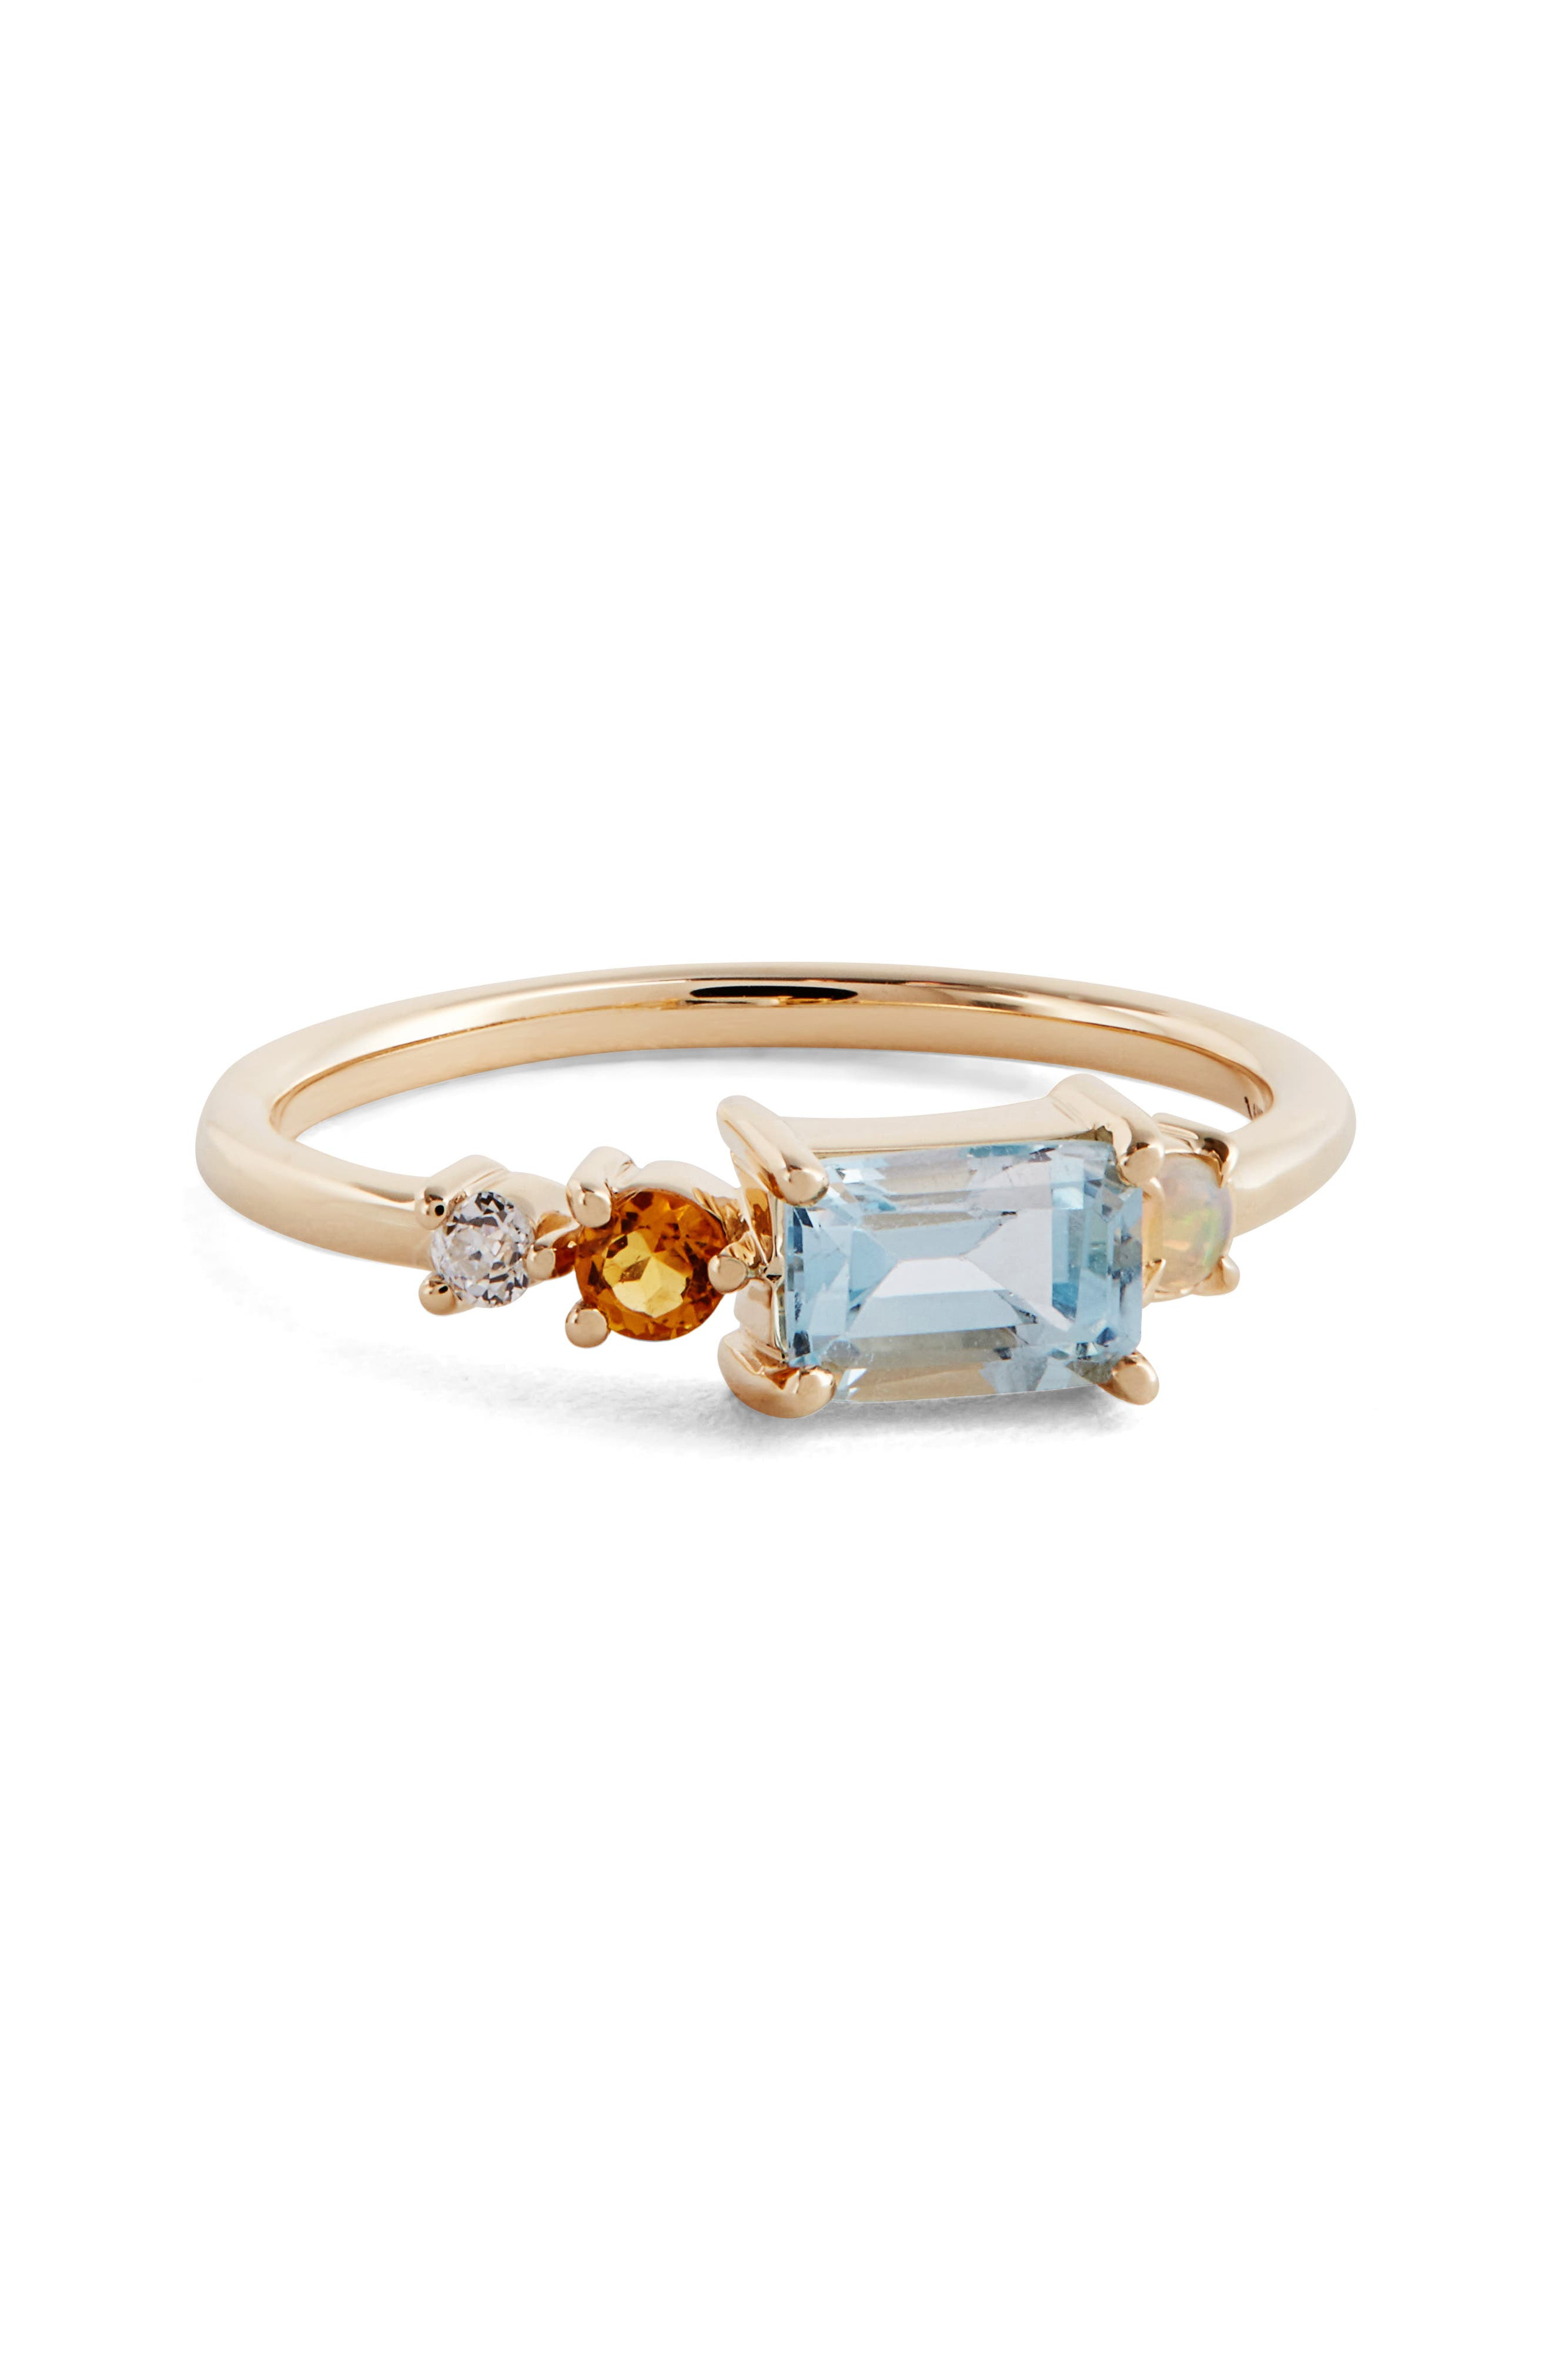 MOCIUN Topaz, Opal, Citrine & Diamond Ring